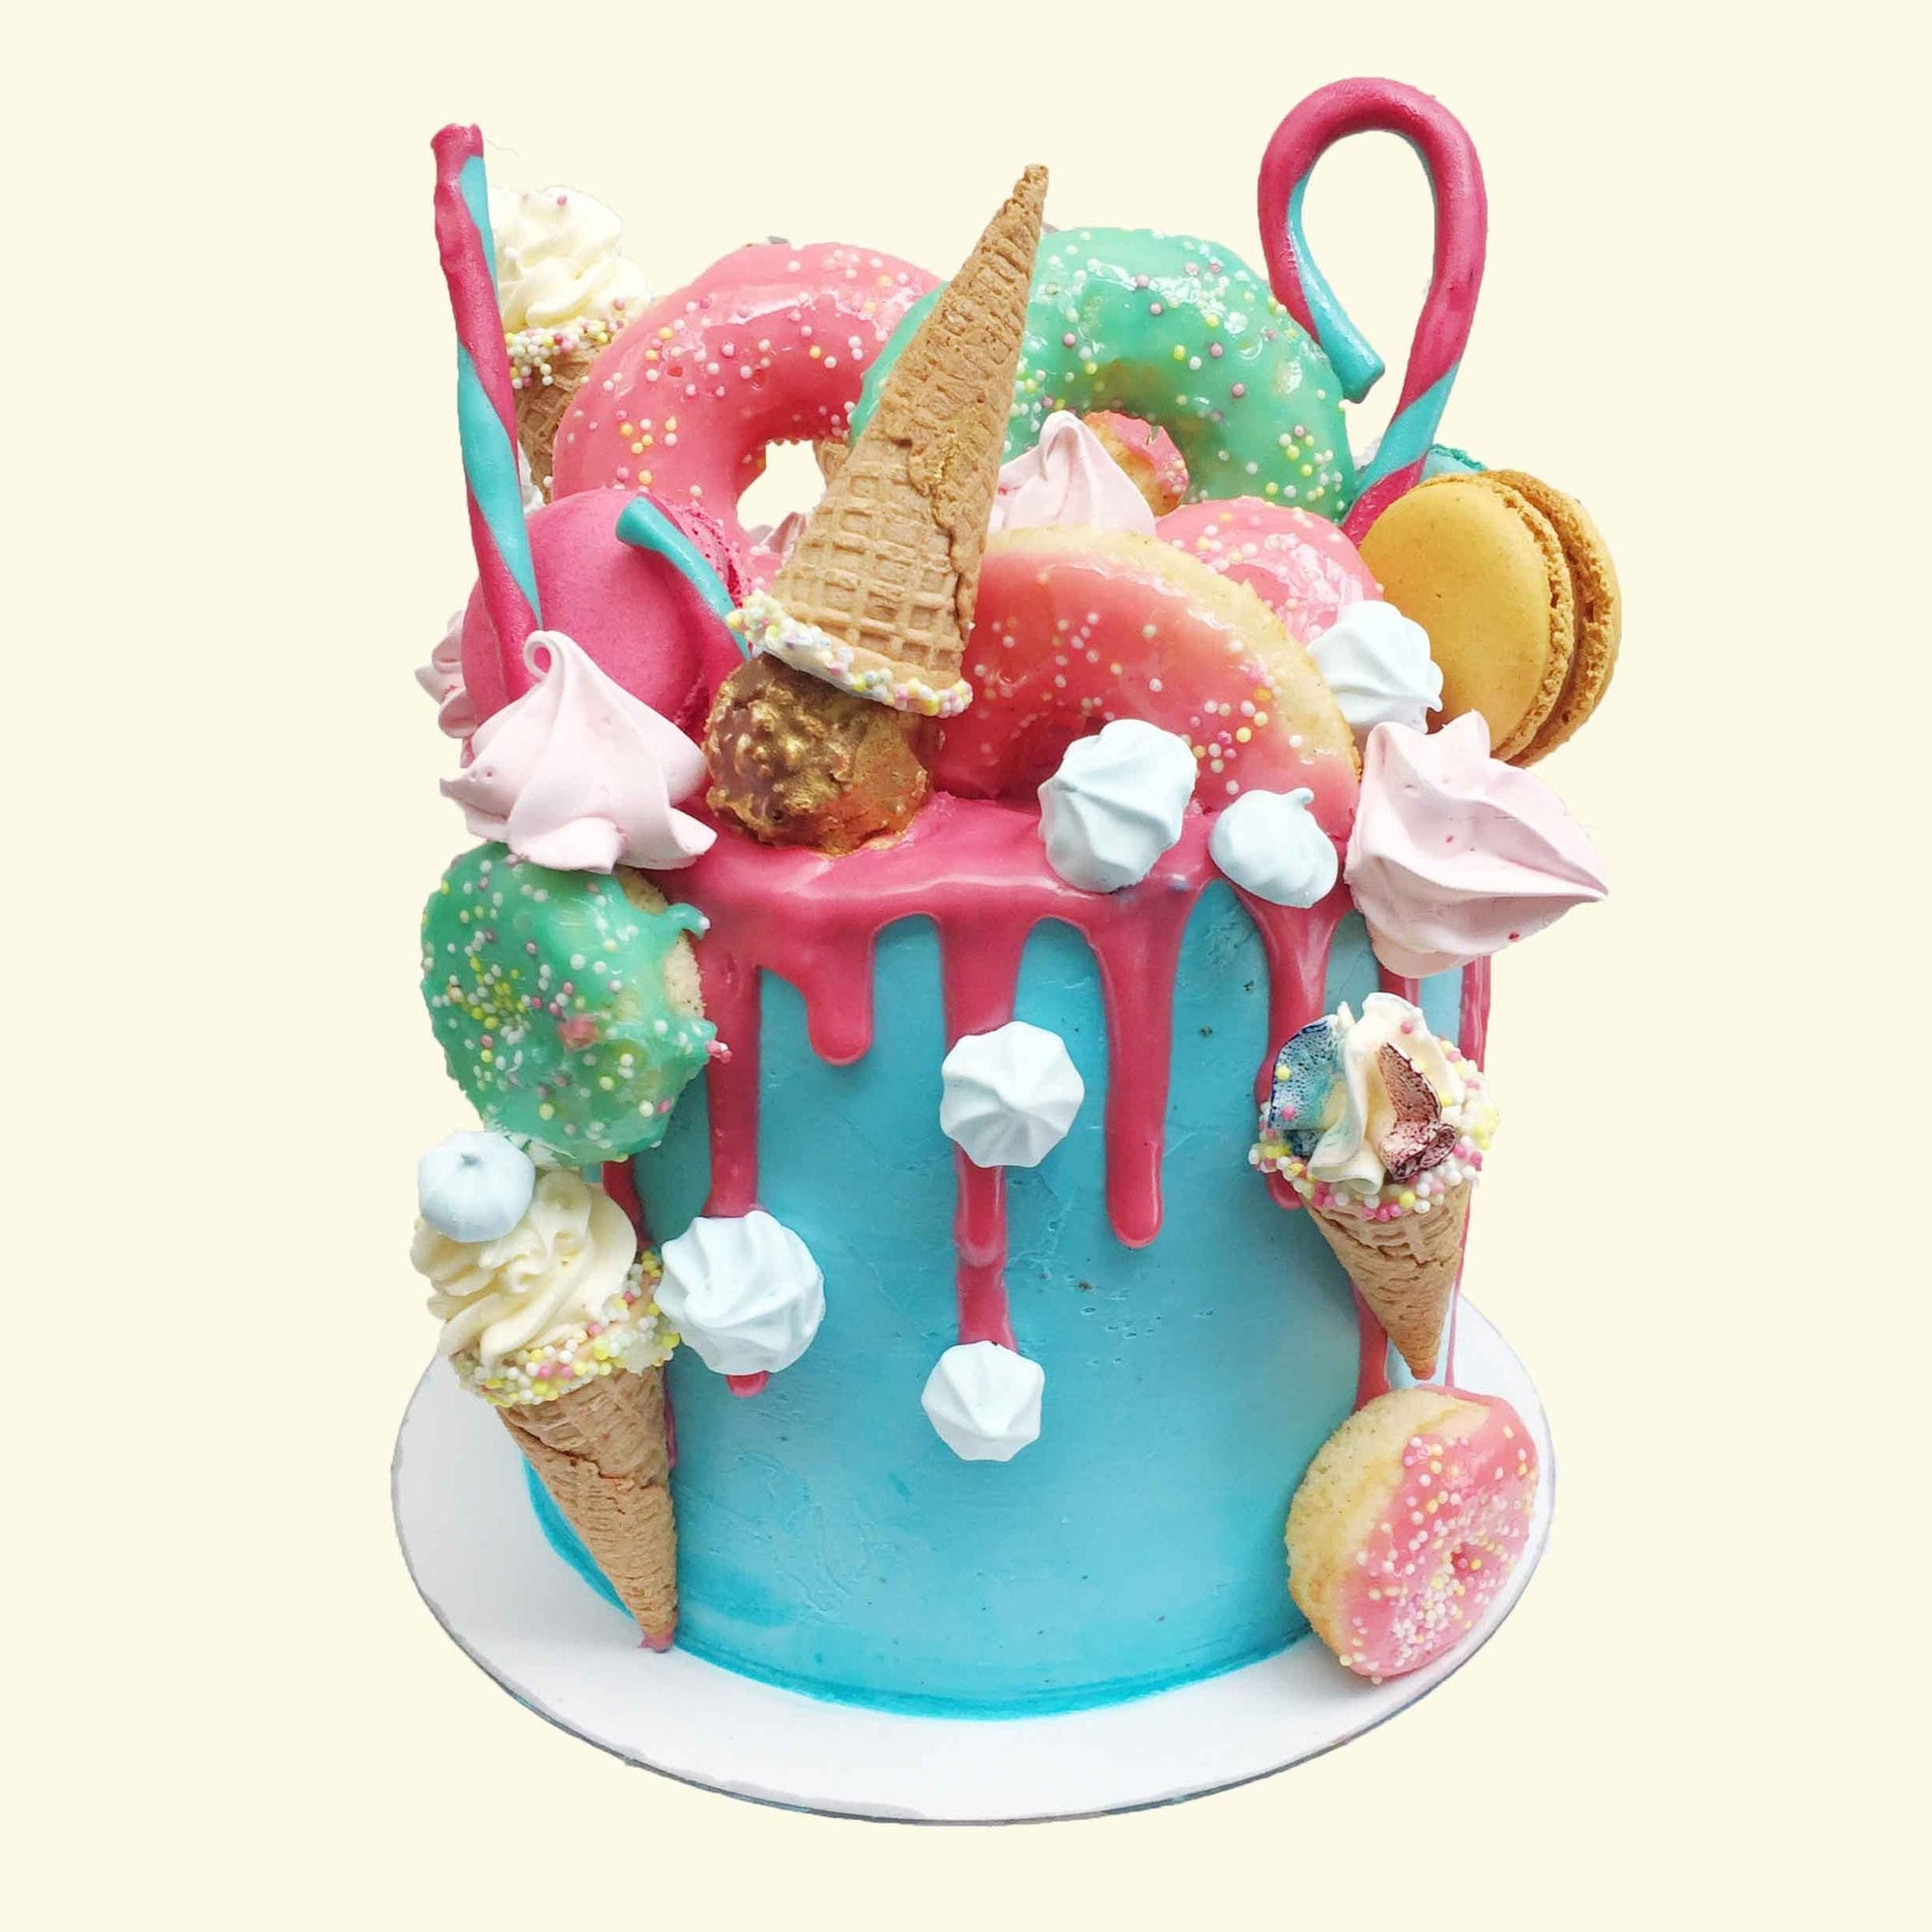 Triple Decker Fun Fair Unicorn Cake